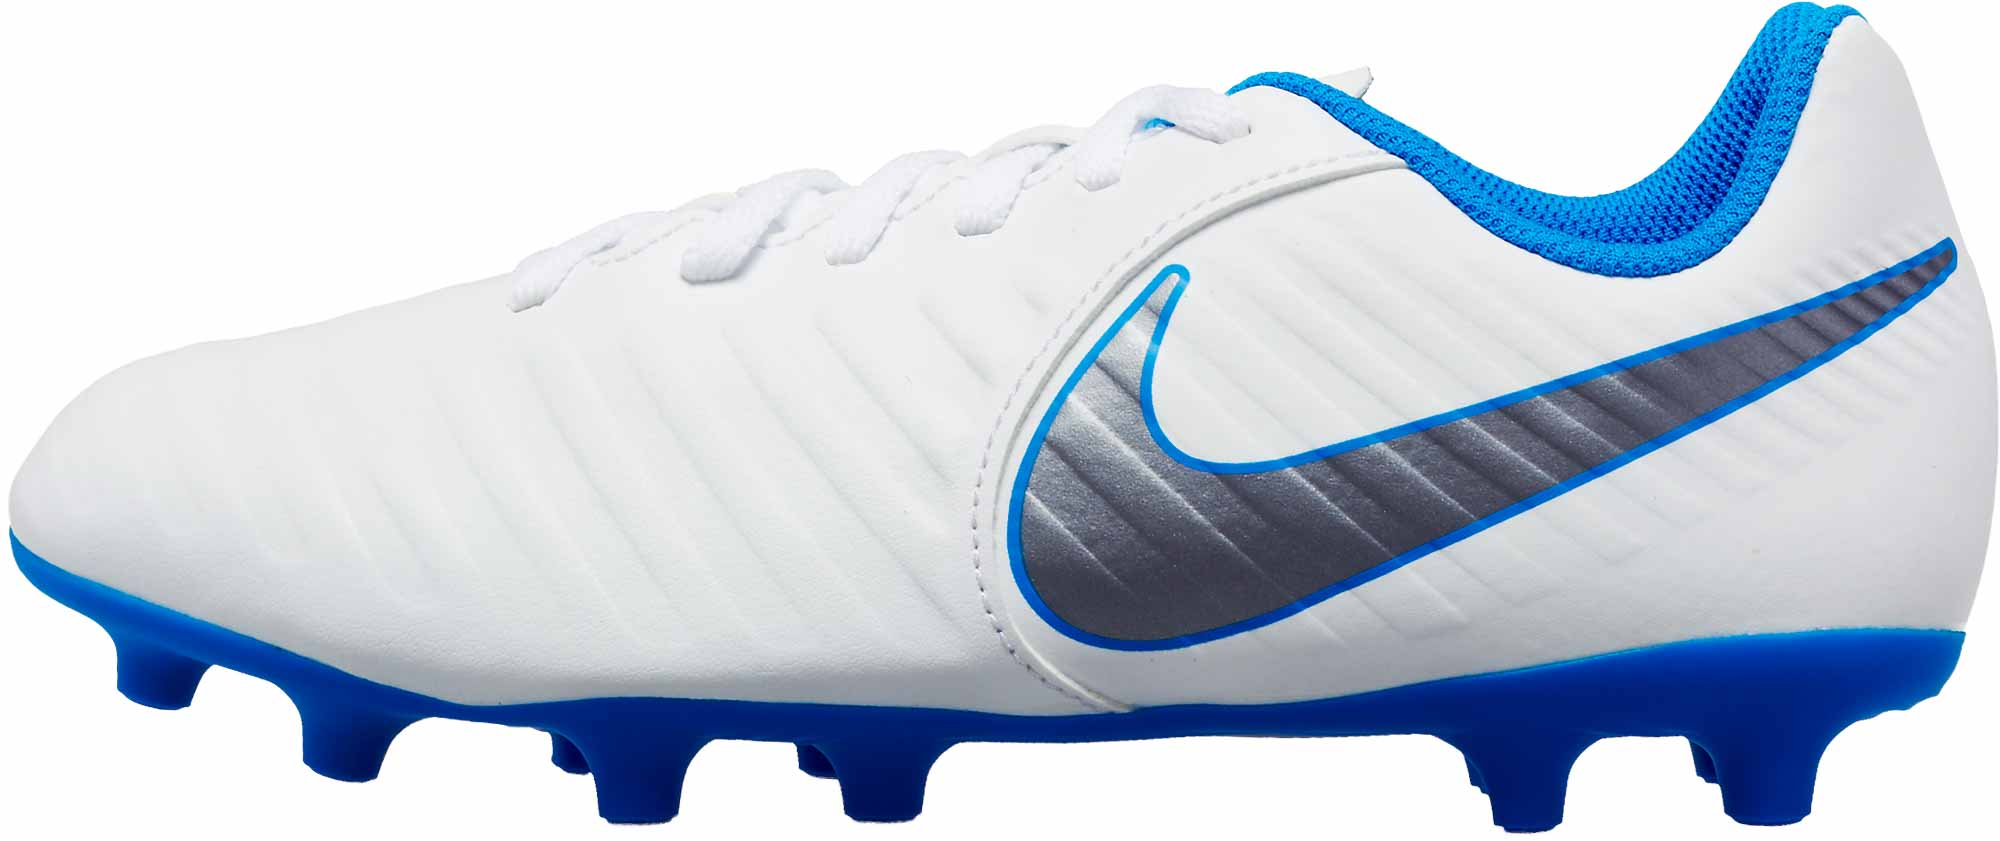 on sale 35471 5696c Nike Tiempo Legend 7 Club FG - Youth - White Metallic Cool Grey Blue ...